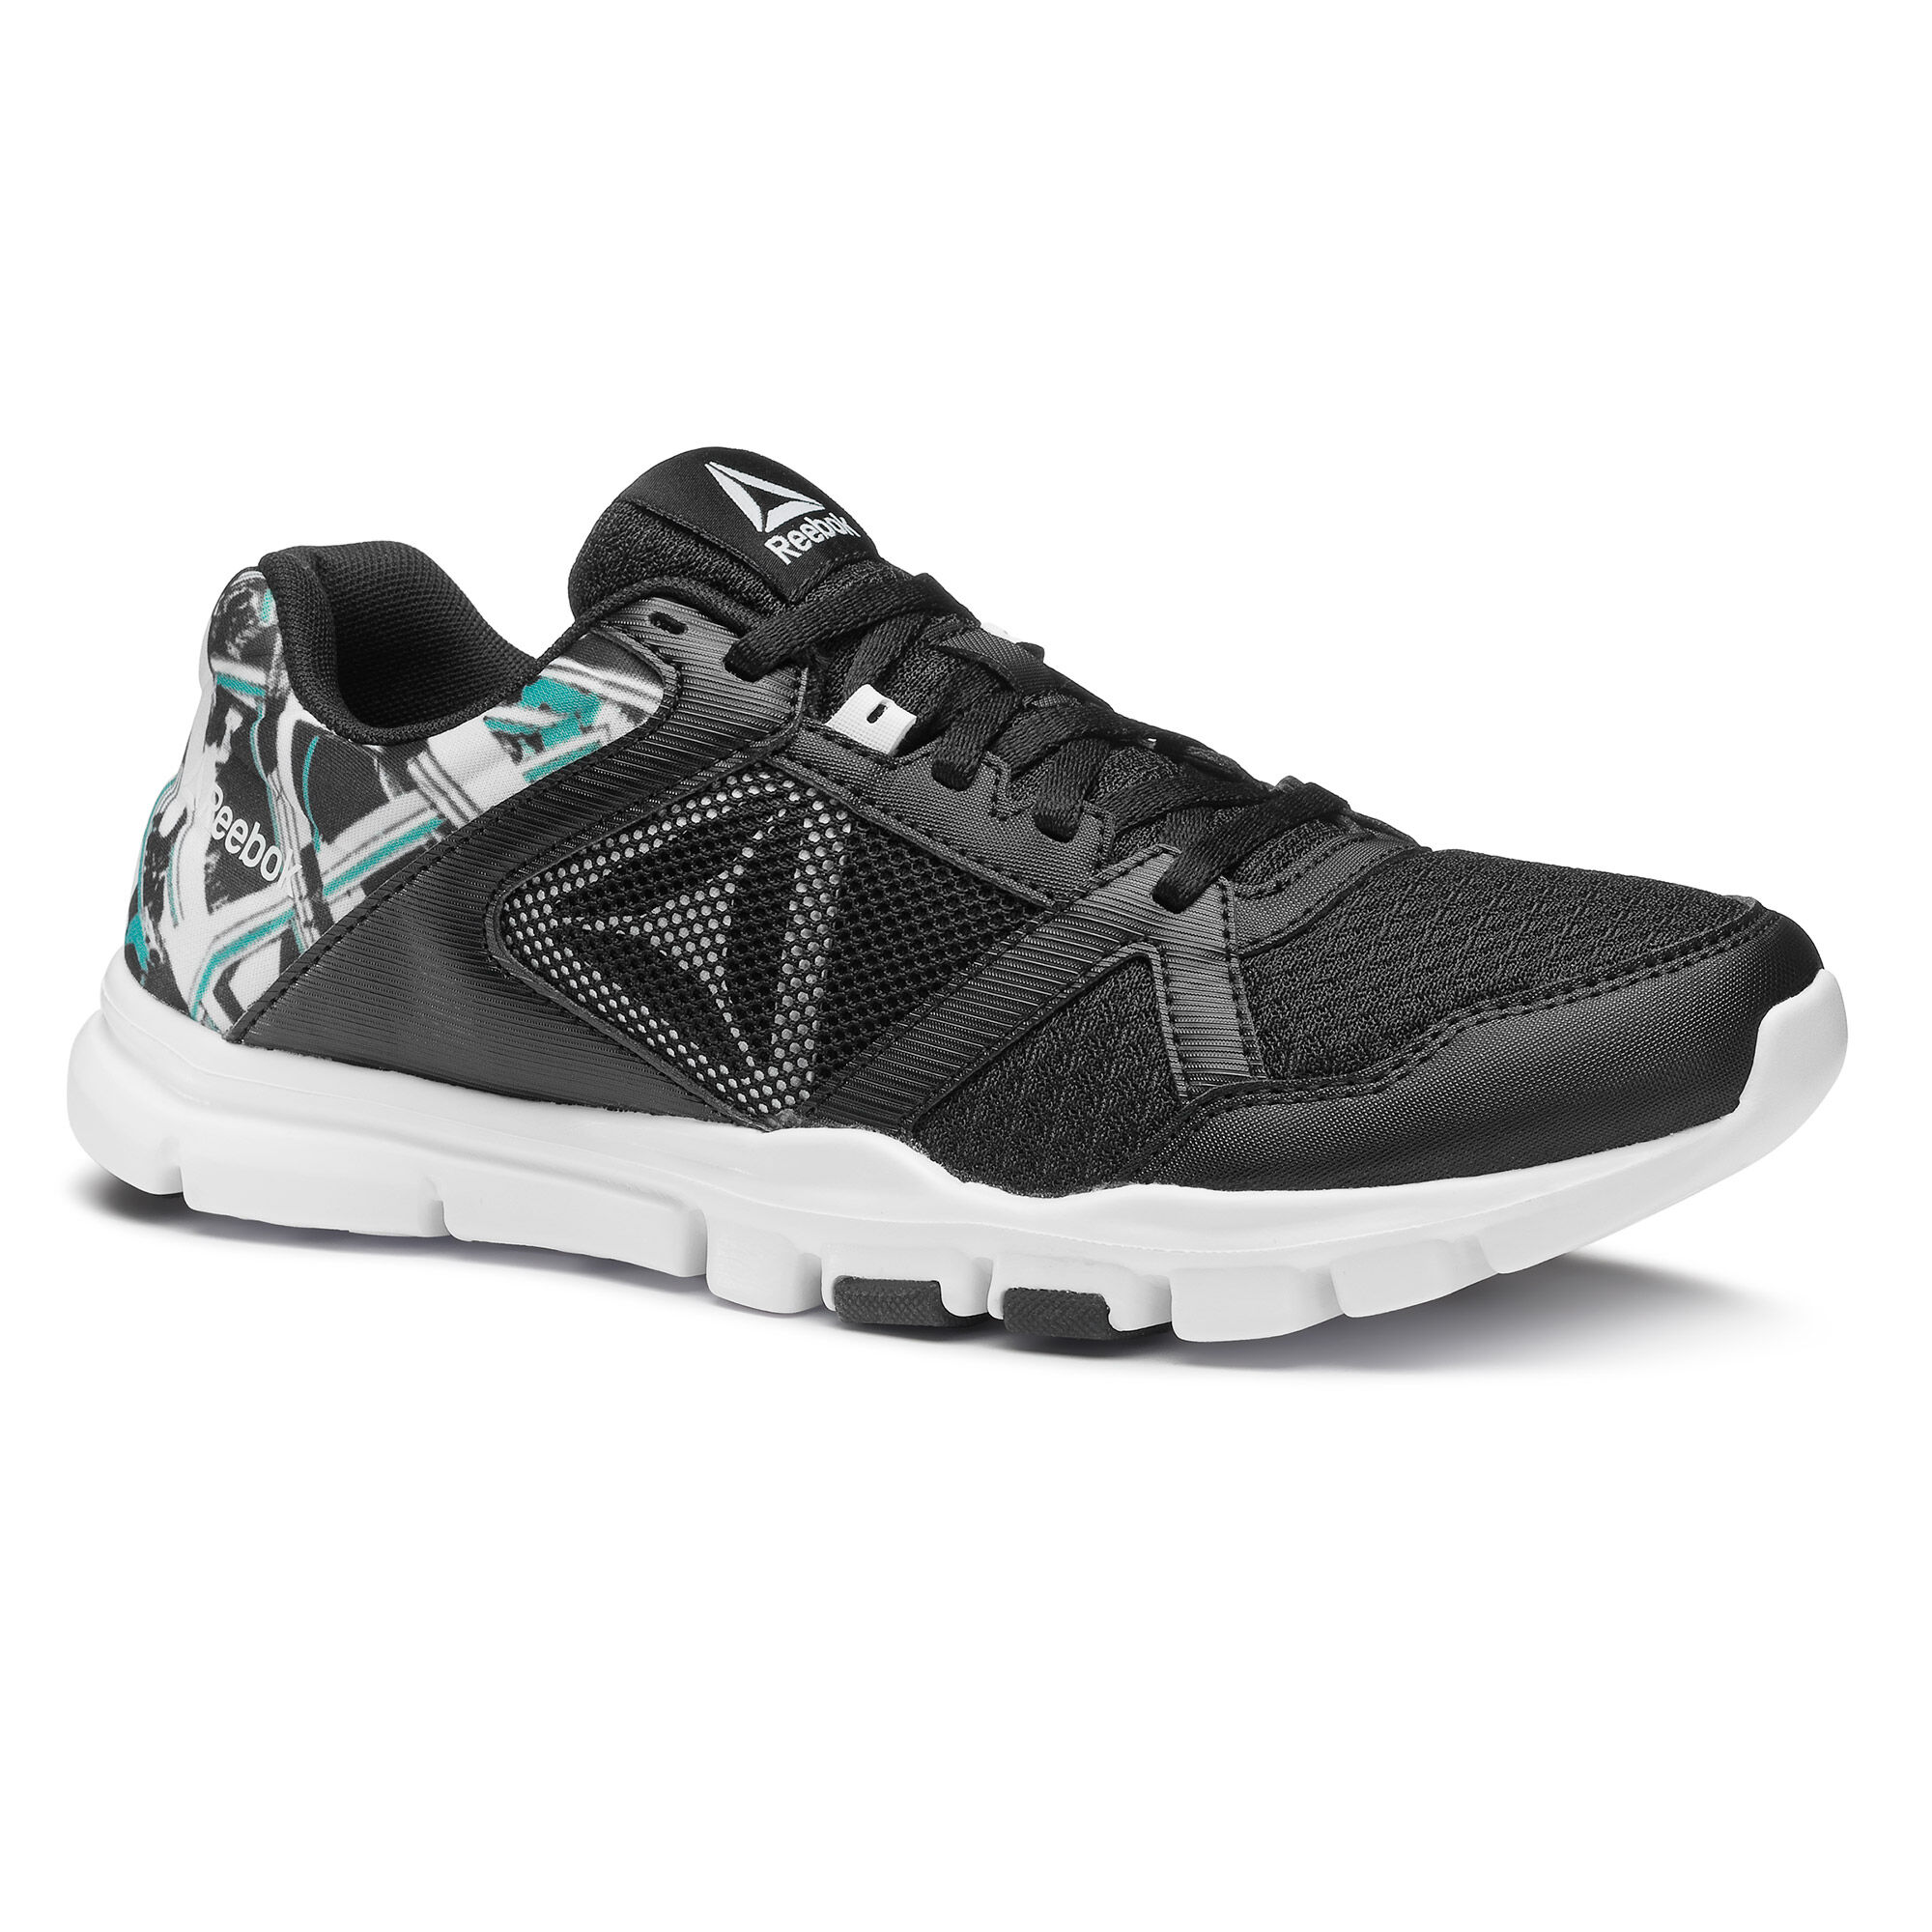 Reebok - Yourflex Trainette - Color: Negro - Size: 38.5 RaOB0